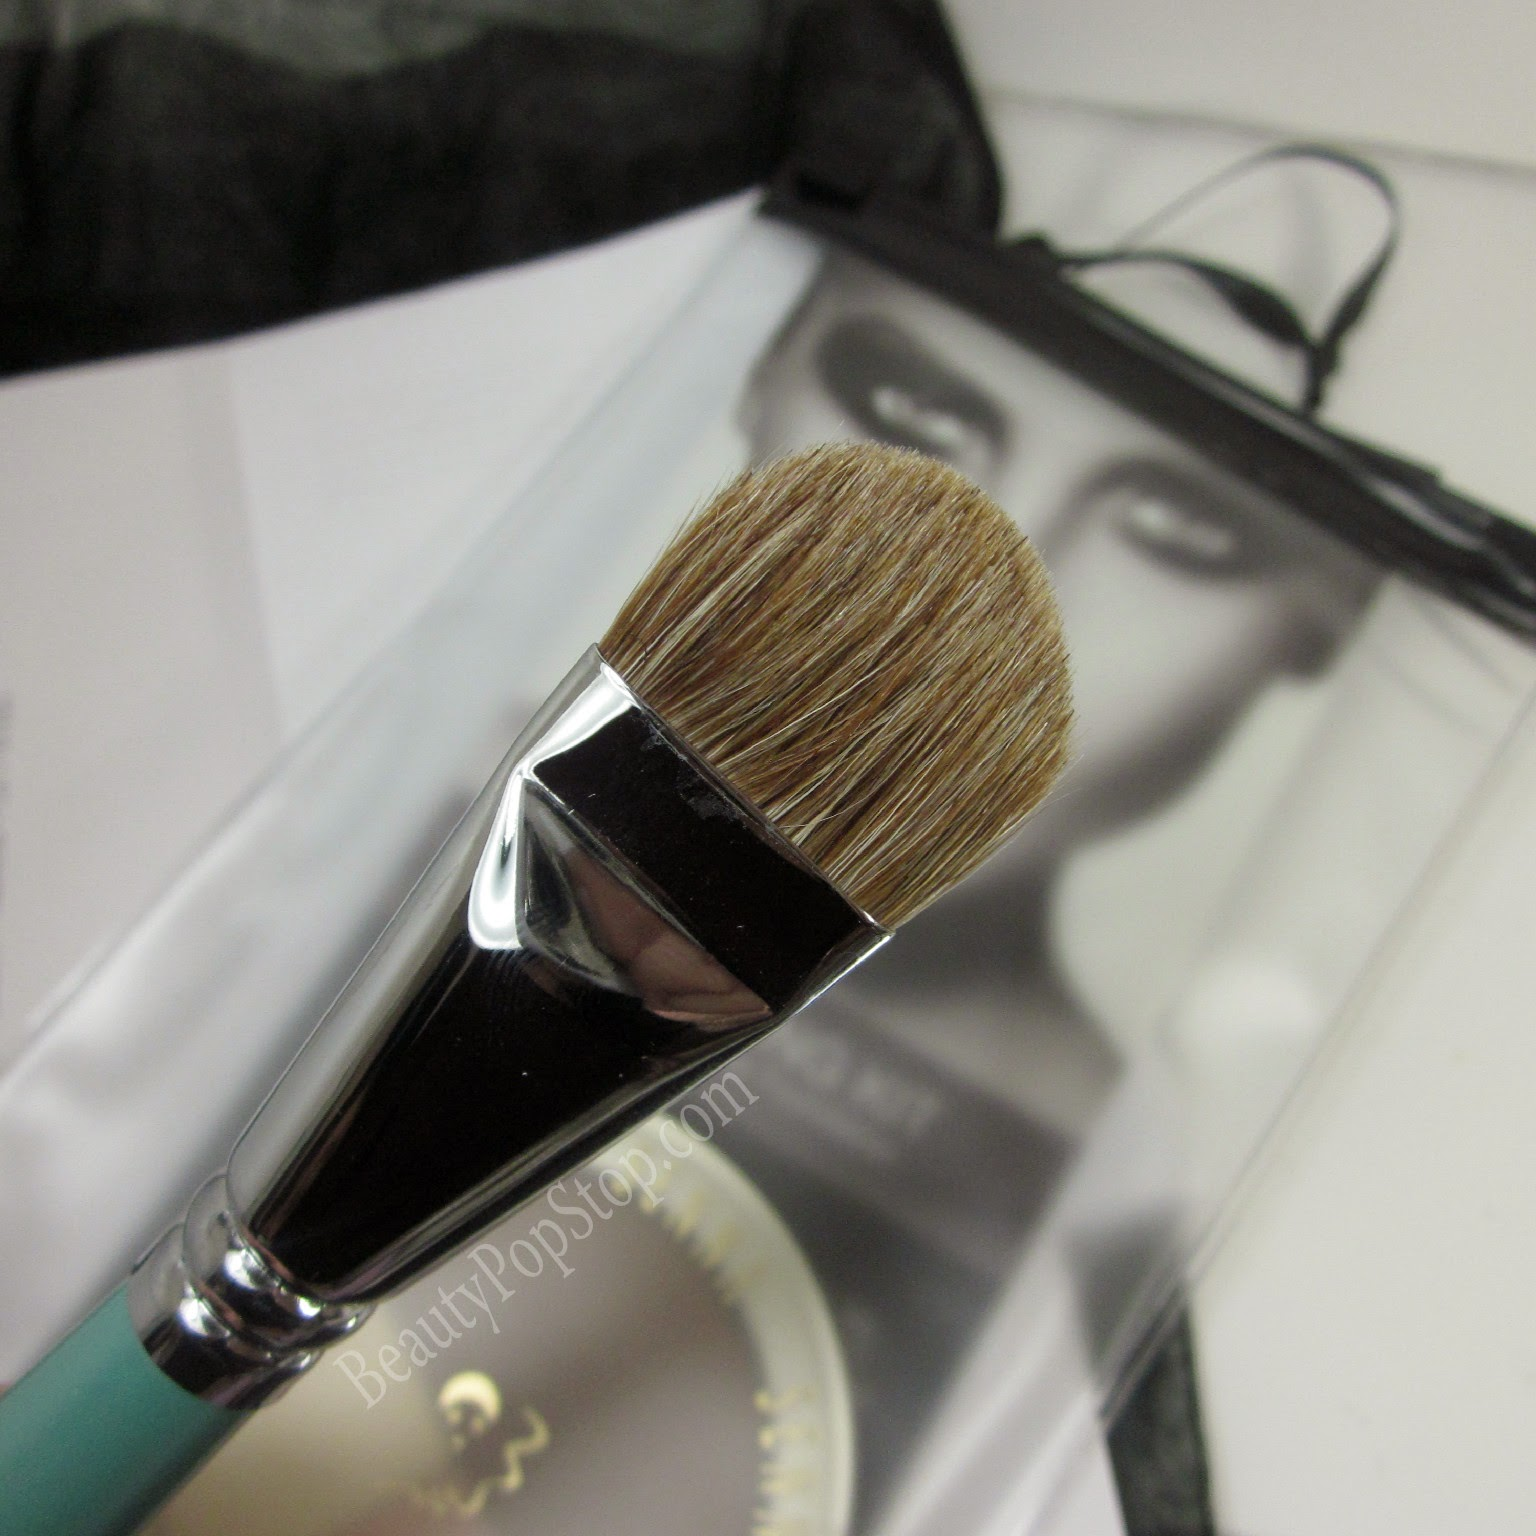 senna foundation 20 makeup brush review